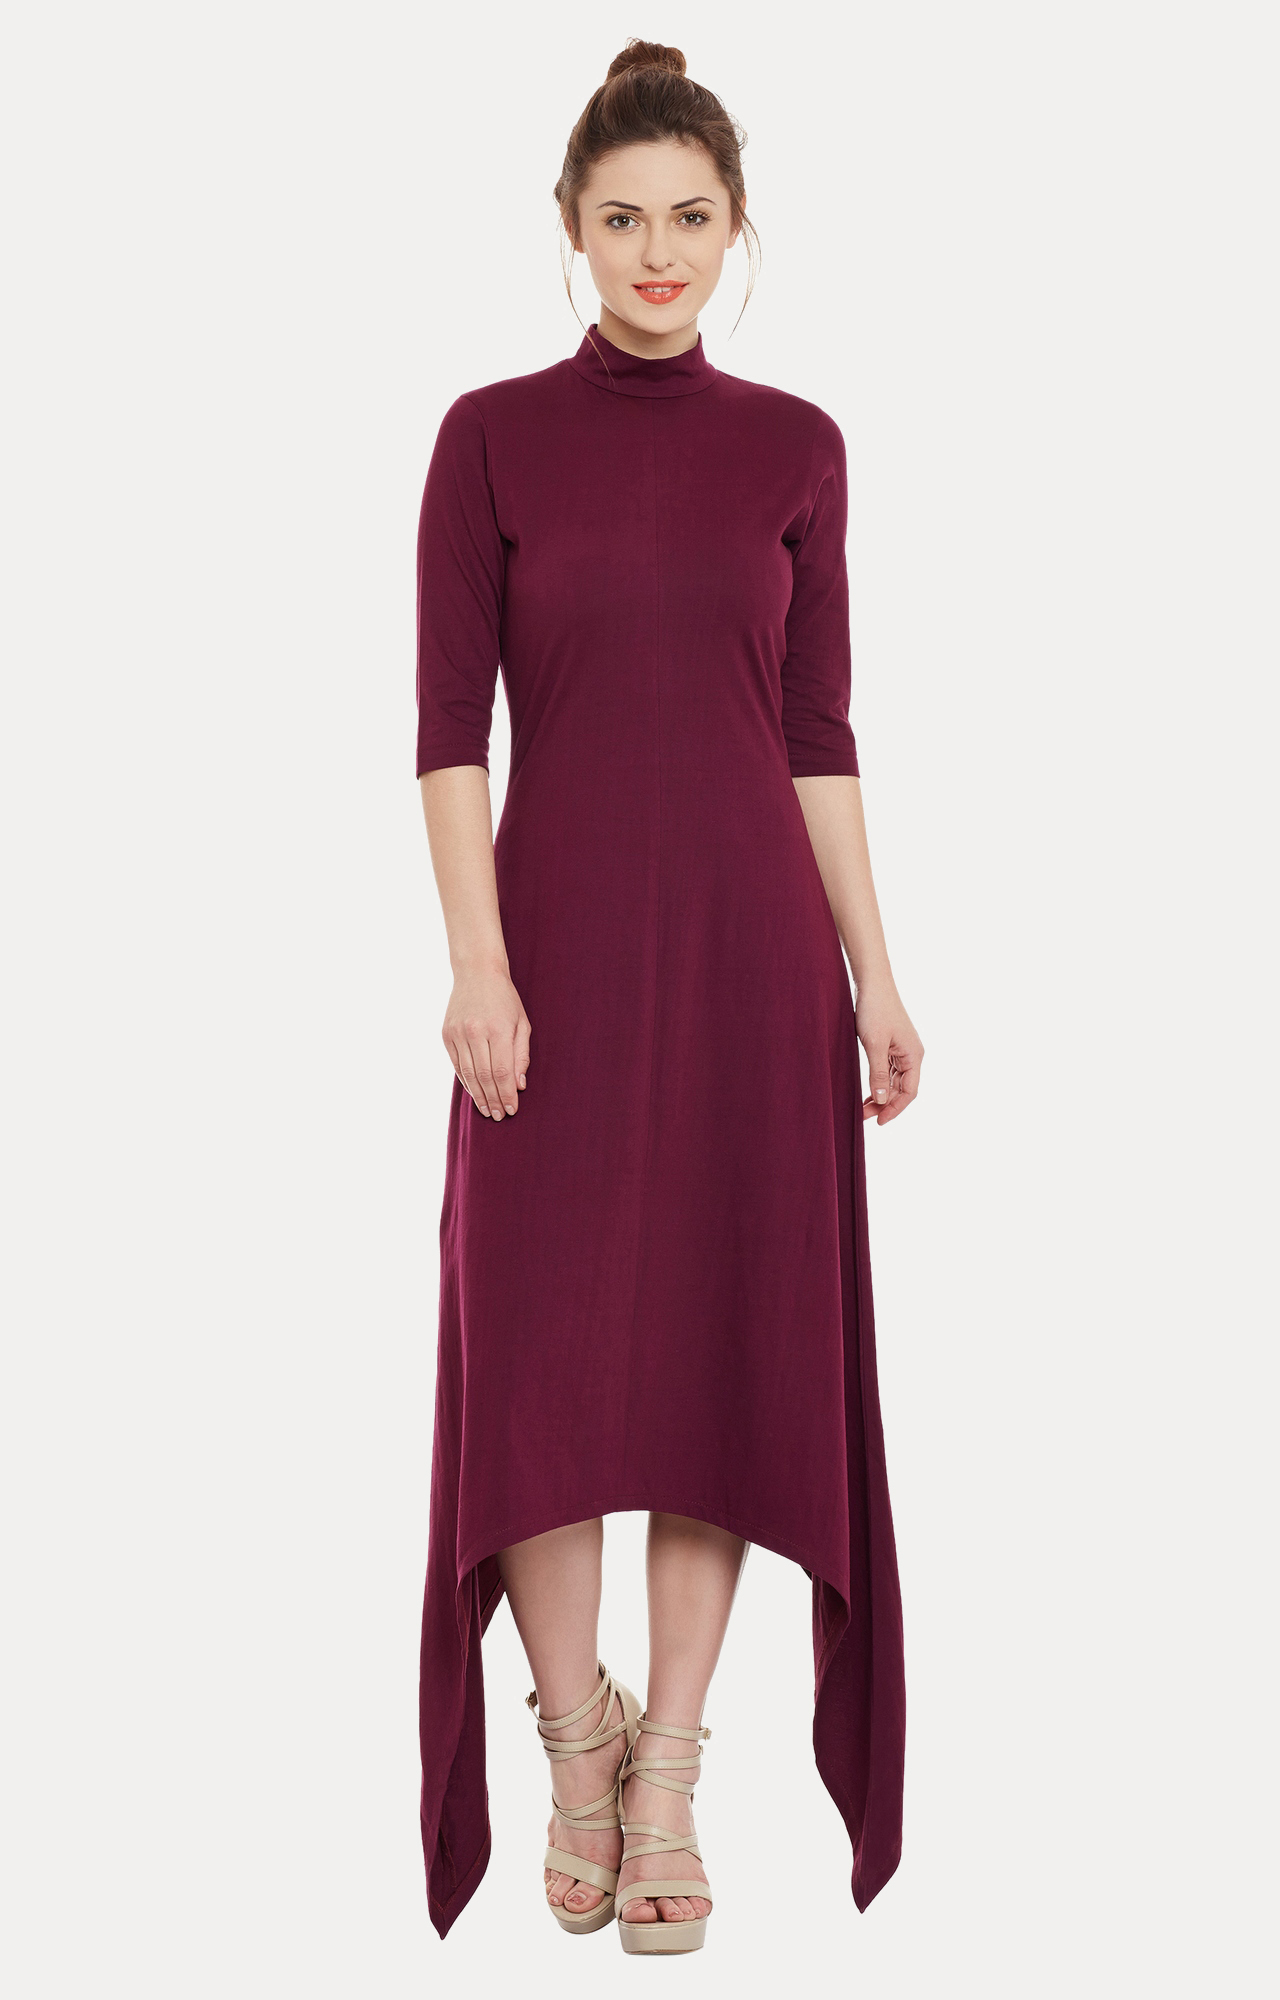 MISS CHASE   Magenta Solid Asymmetric Dress